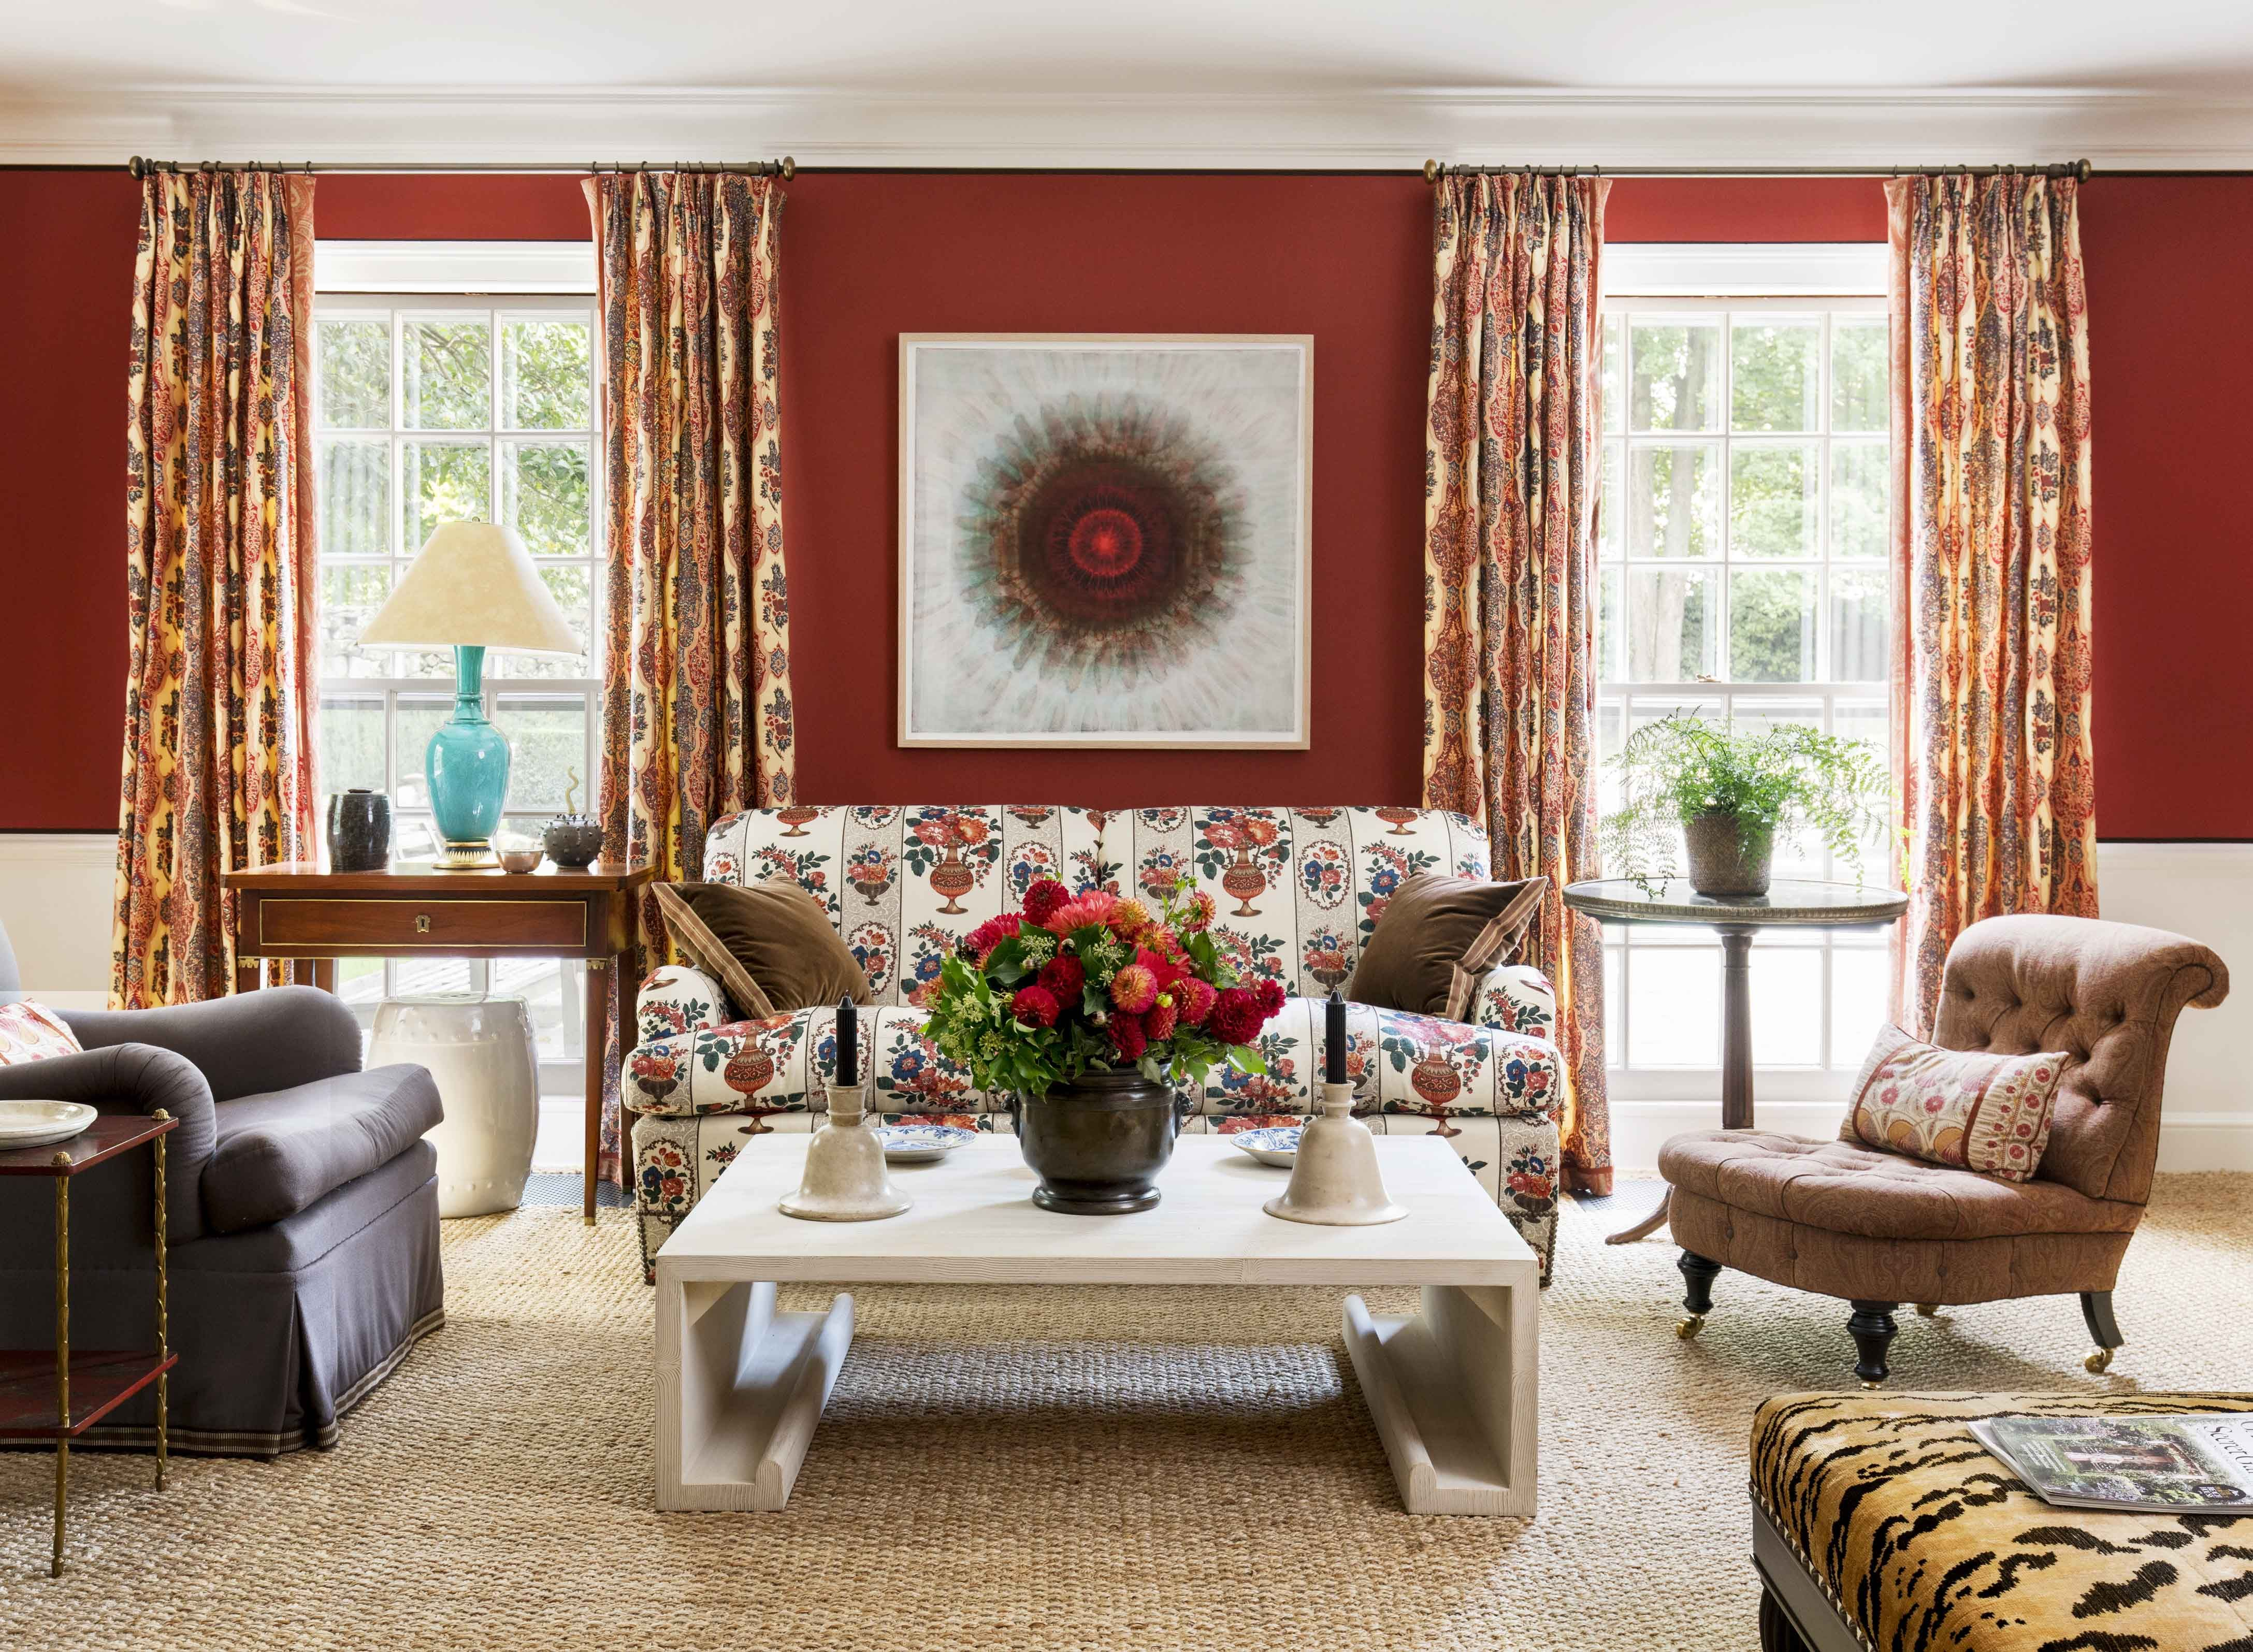 Best 40 Living Room Paint Colors 2021 Beautiful Wall Color Ideas